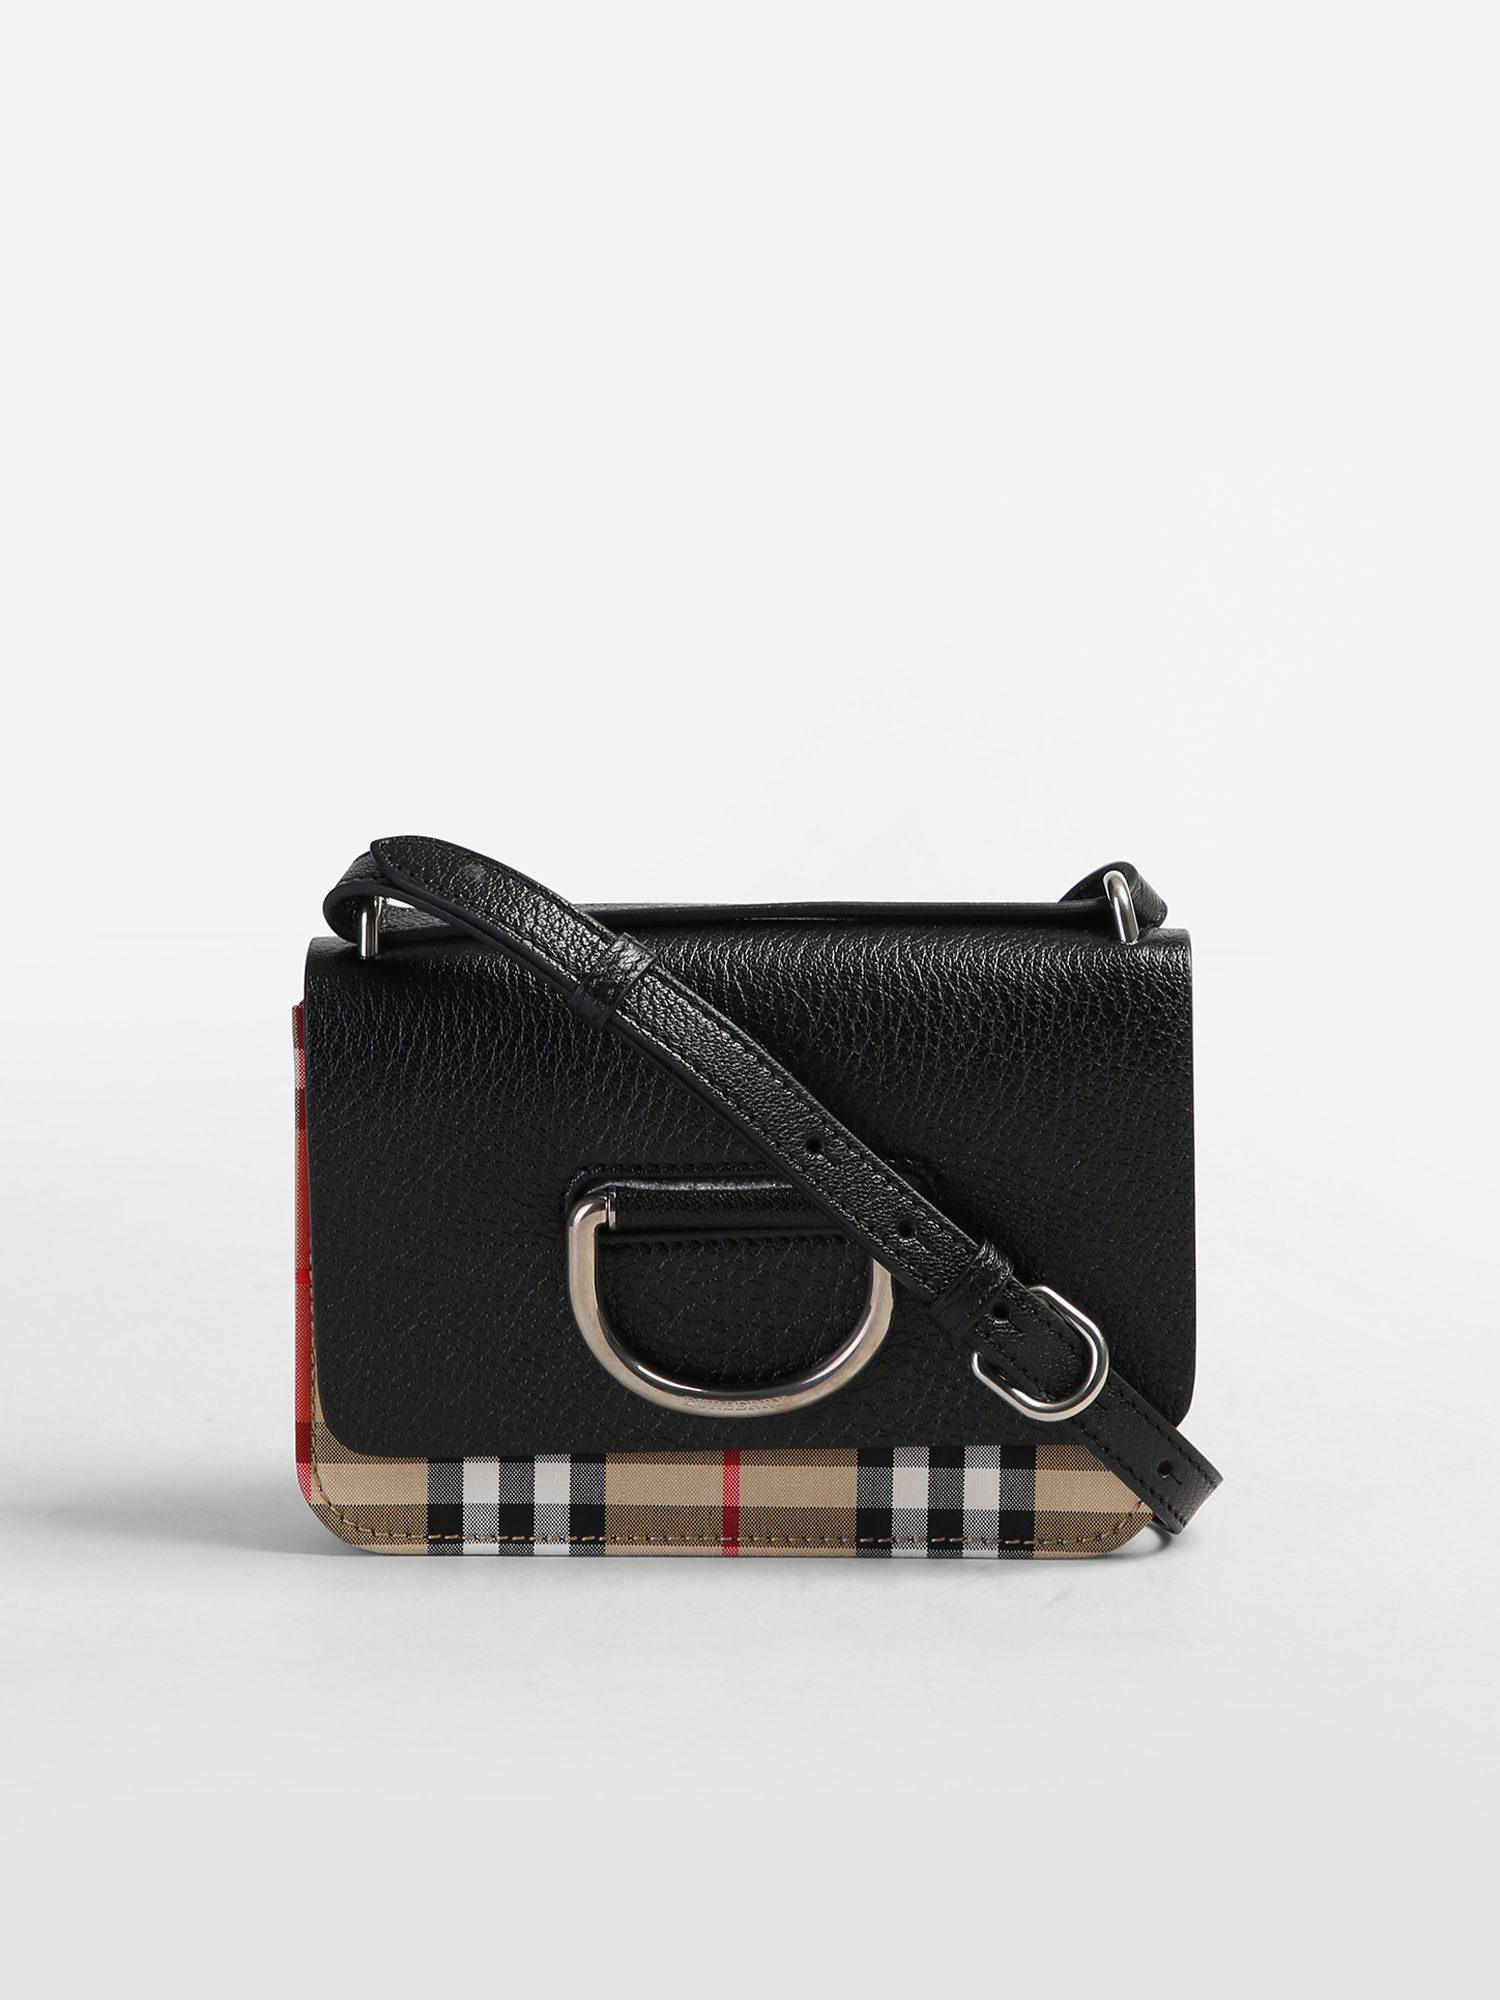 Burberry D-ring Mini Canvas And Leather Bag in Black - Lyst 93c64cf5af9ce